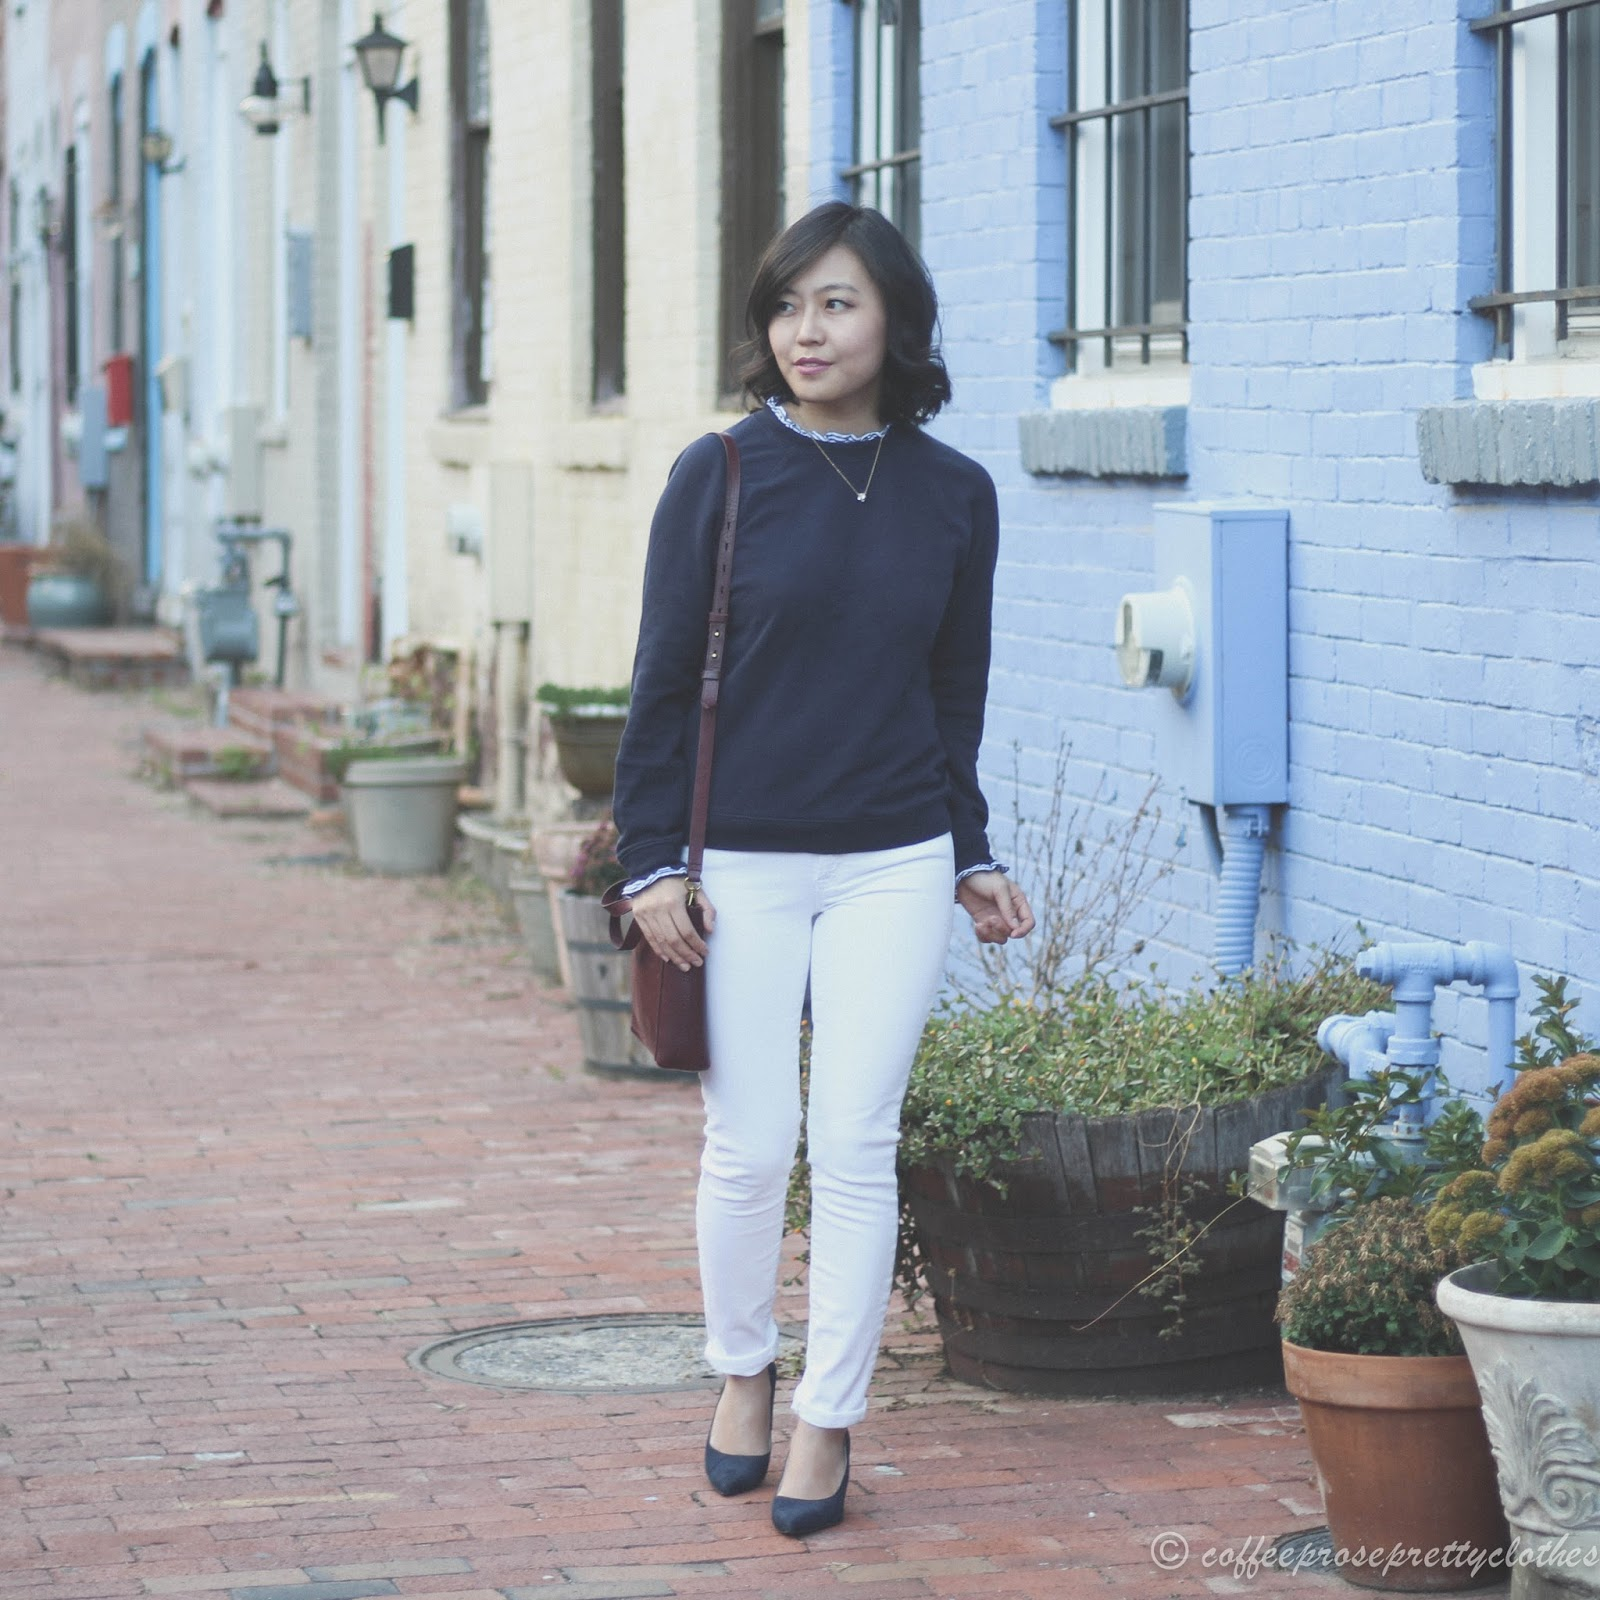 J.Crew Factory Sweater, J.Crew toothpick jeans, Madewell Small Transport Crossbody, Zara shoes